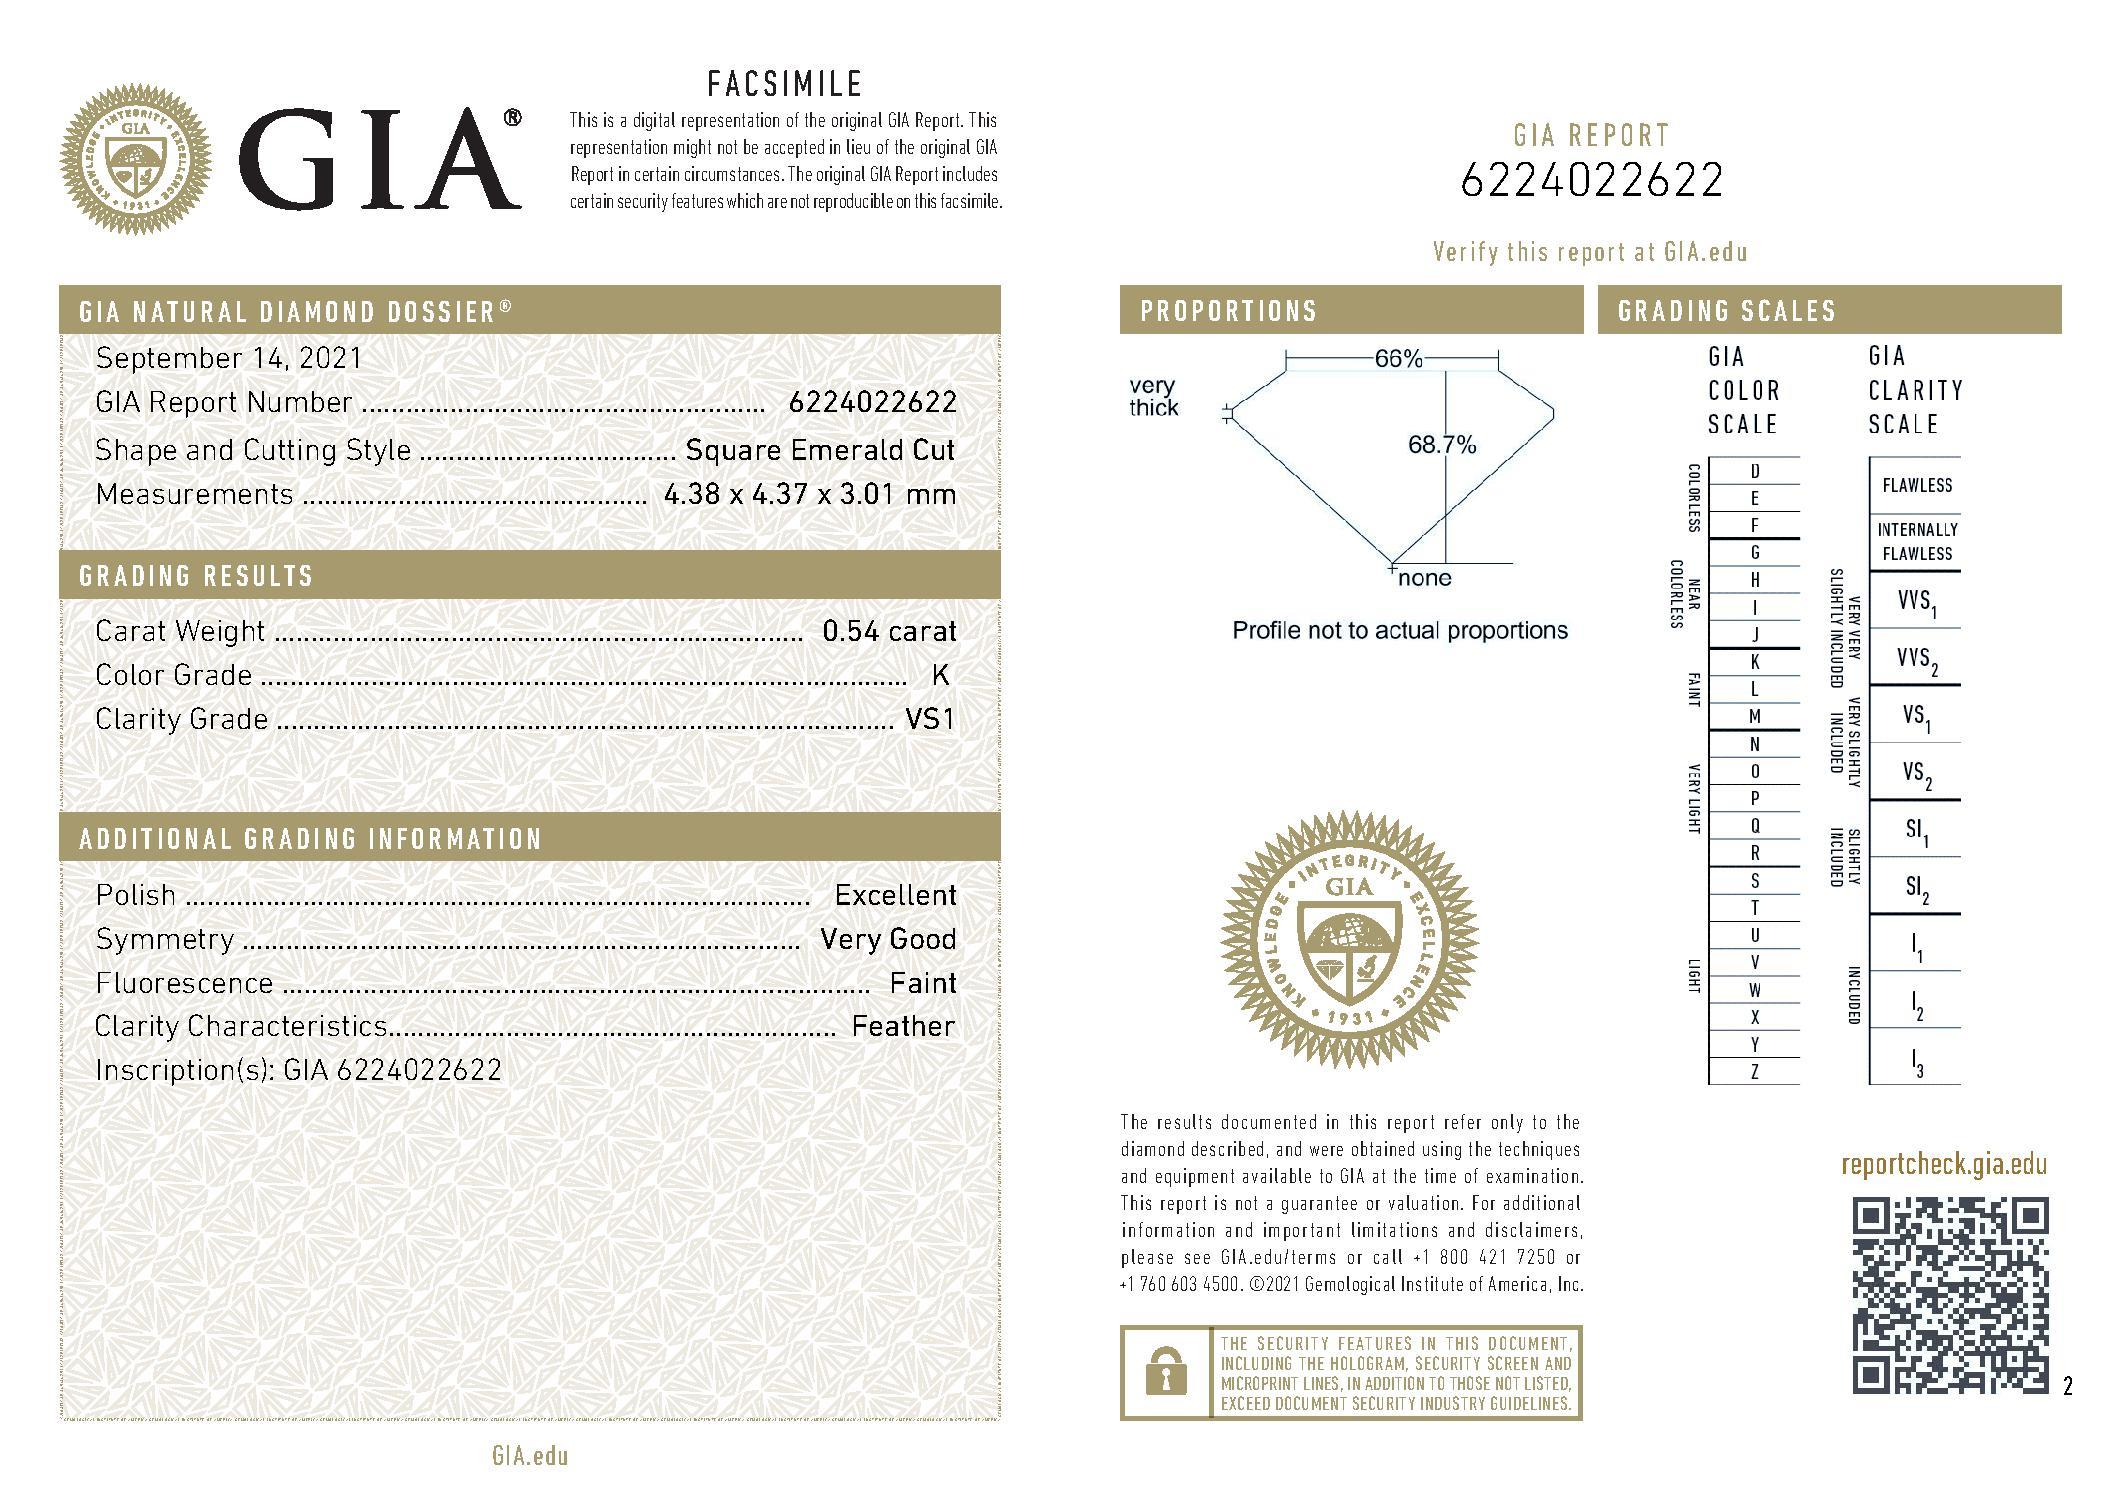 This is a 0.54 carat asscher shape, K color, VS1 clarity natural diamond accompanied by a GIA grading report.